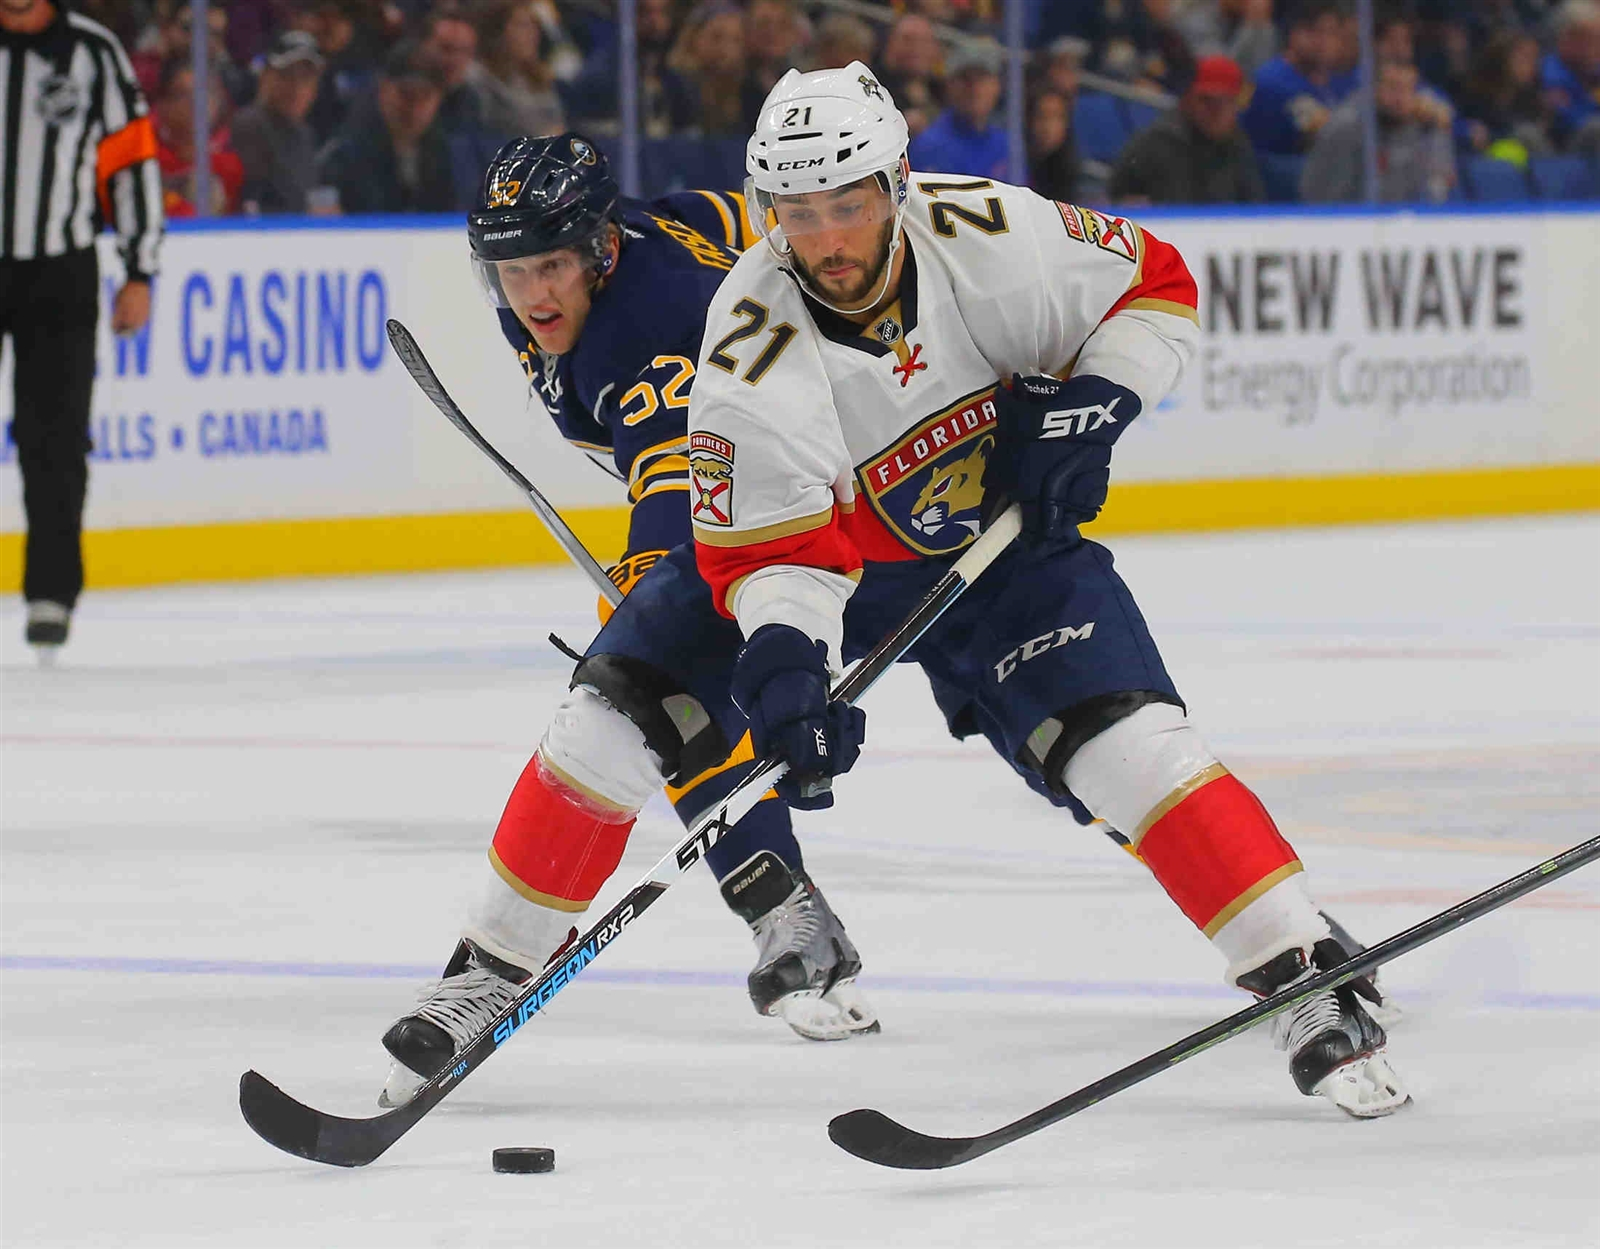 Florida Panther's Vincent Trocheck (21) works past Buffalo Sabres Hudson Fasching (52) in second period action.